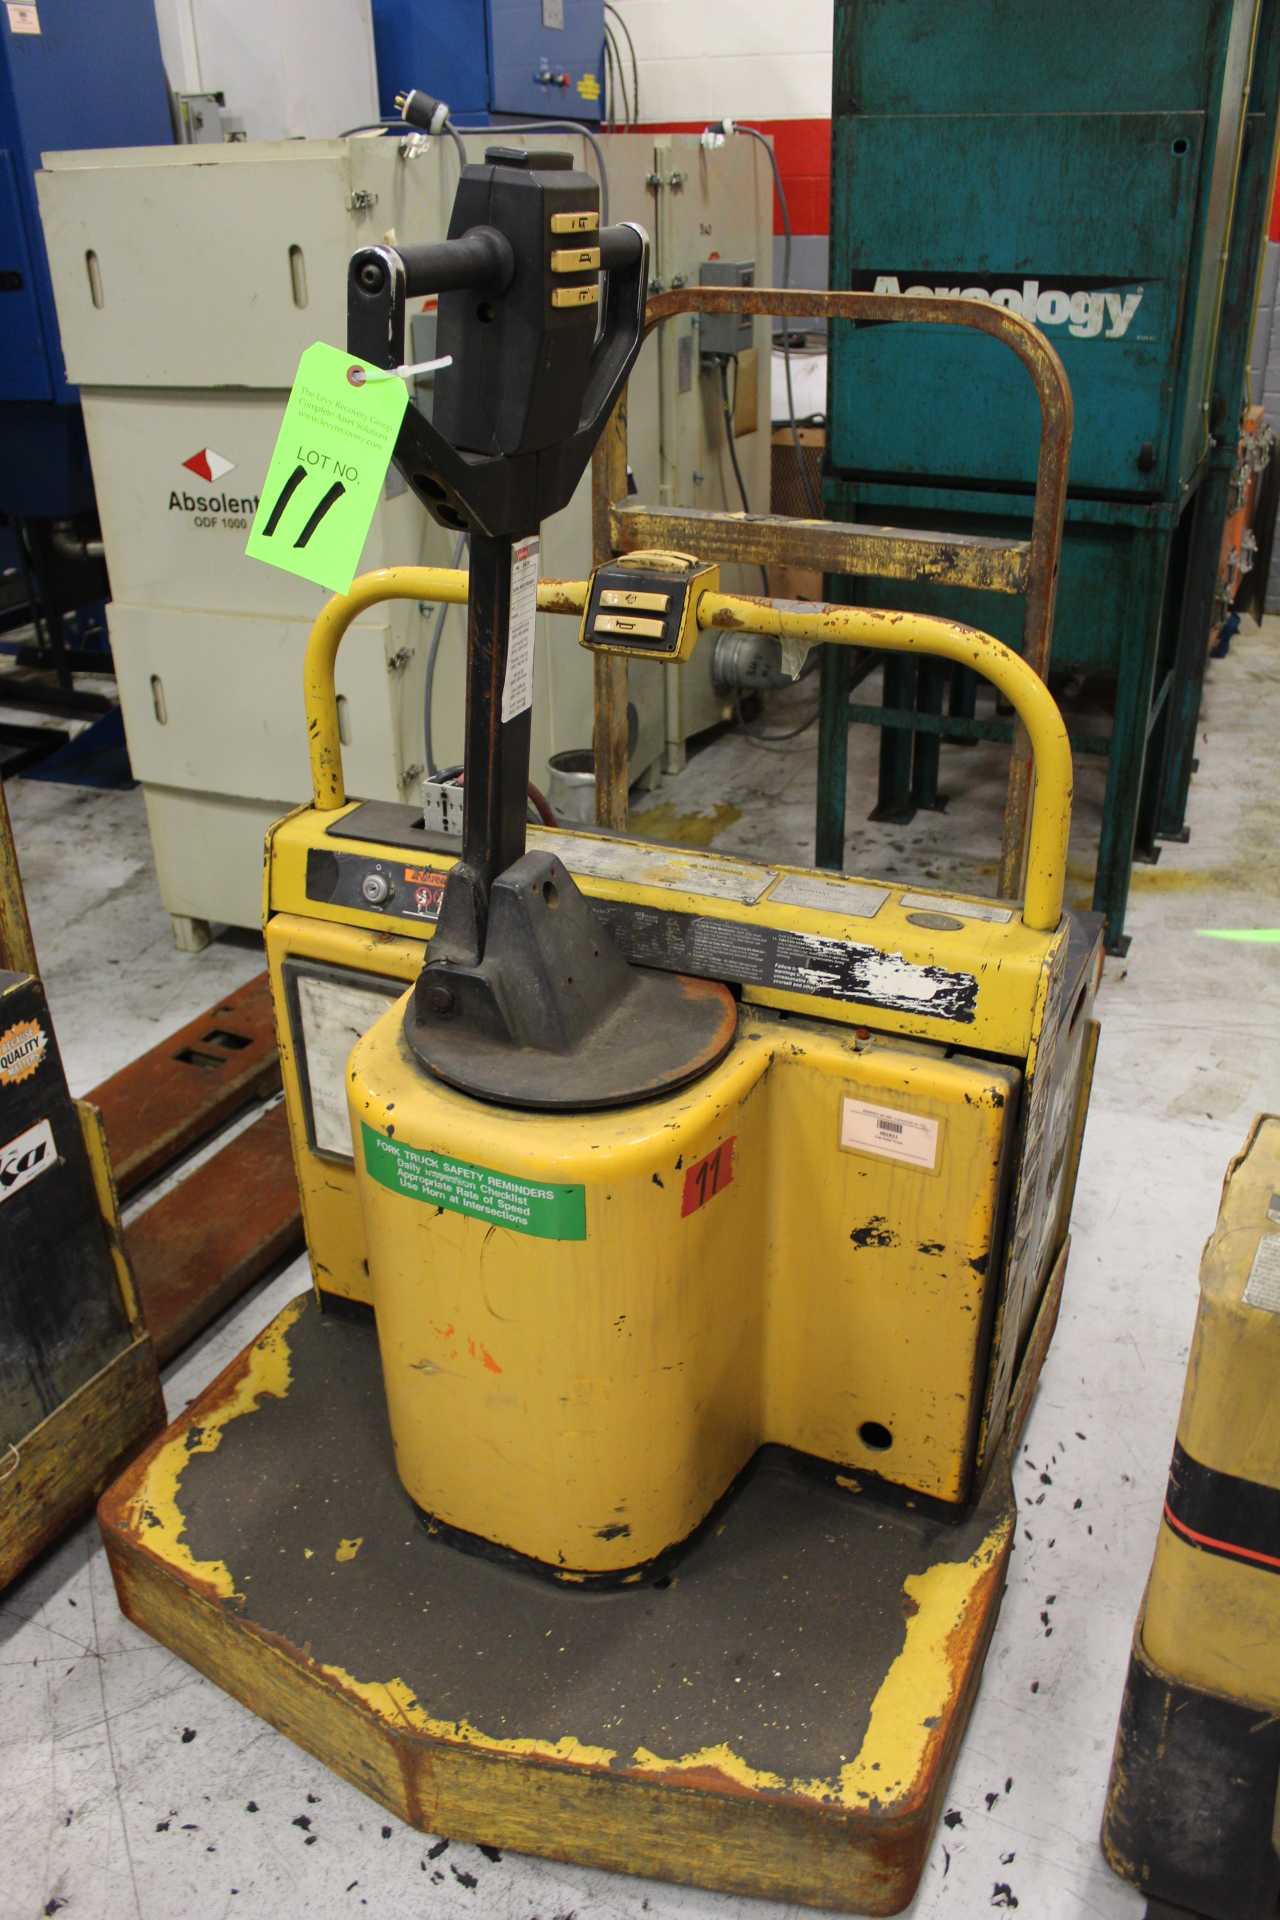 Lot 11 - Yale Model MPE060LCN24T2248 Rider-Type Electric Pallet Jack